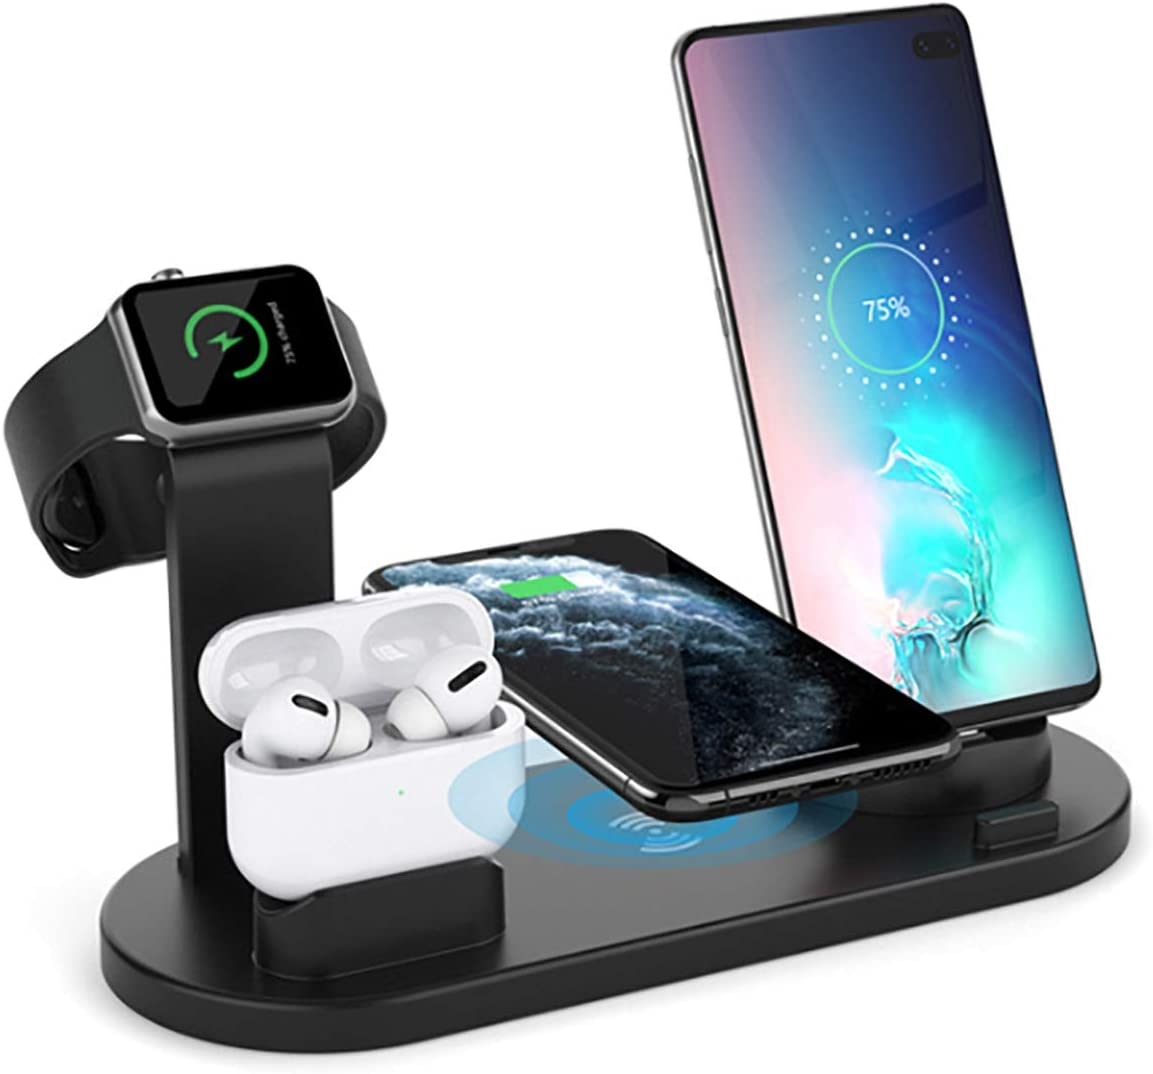 Wireless Charging Dock Station, 6 in 1Qi-Certified Fast 10W Charging, Rotatable Stand-Compatible for iPhone 11/Pro/Xs Max/XS/XR/X/8 Plus, Micro USB/Type-C Phone/,iwatch 1/2/3/4/5, AirPods/AirPods Pro